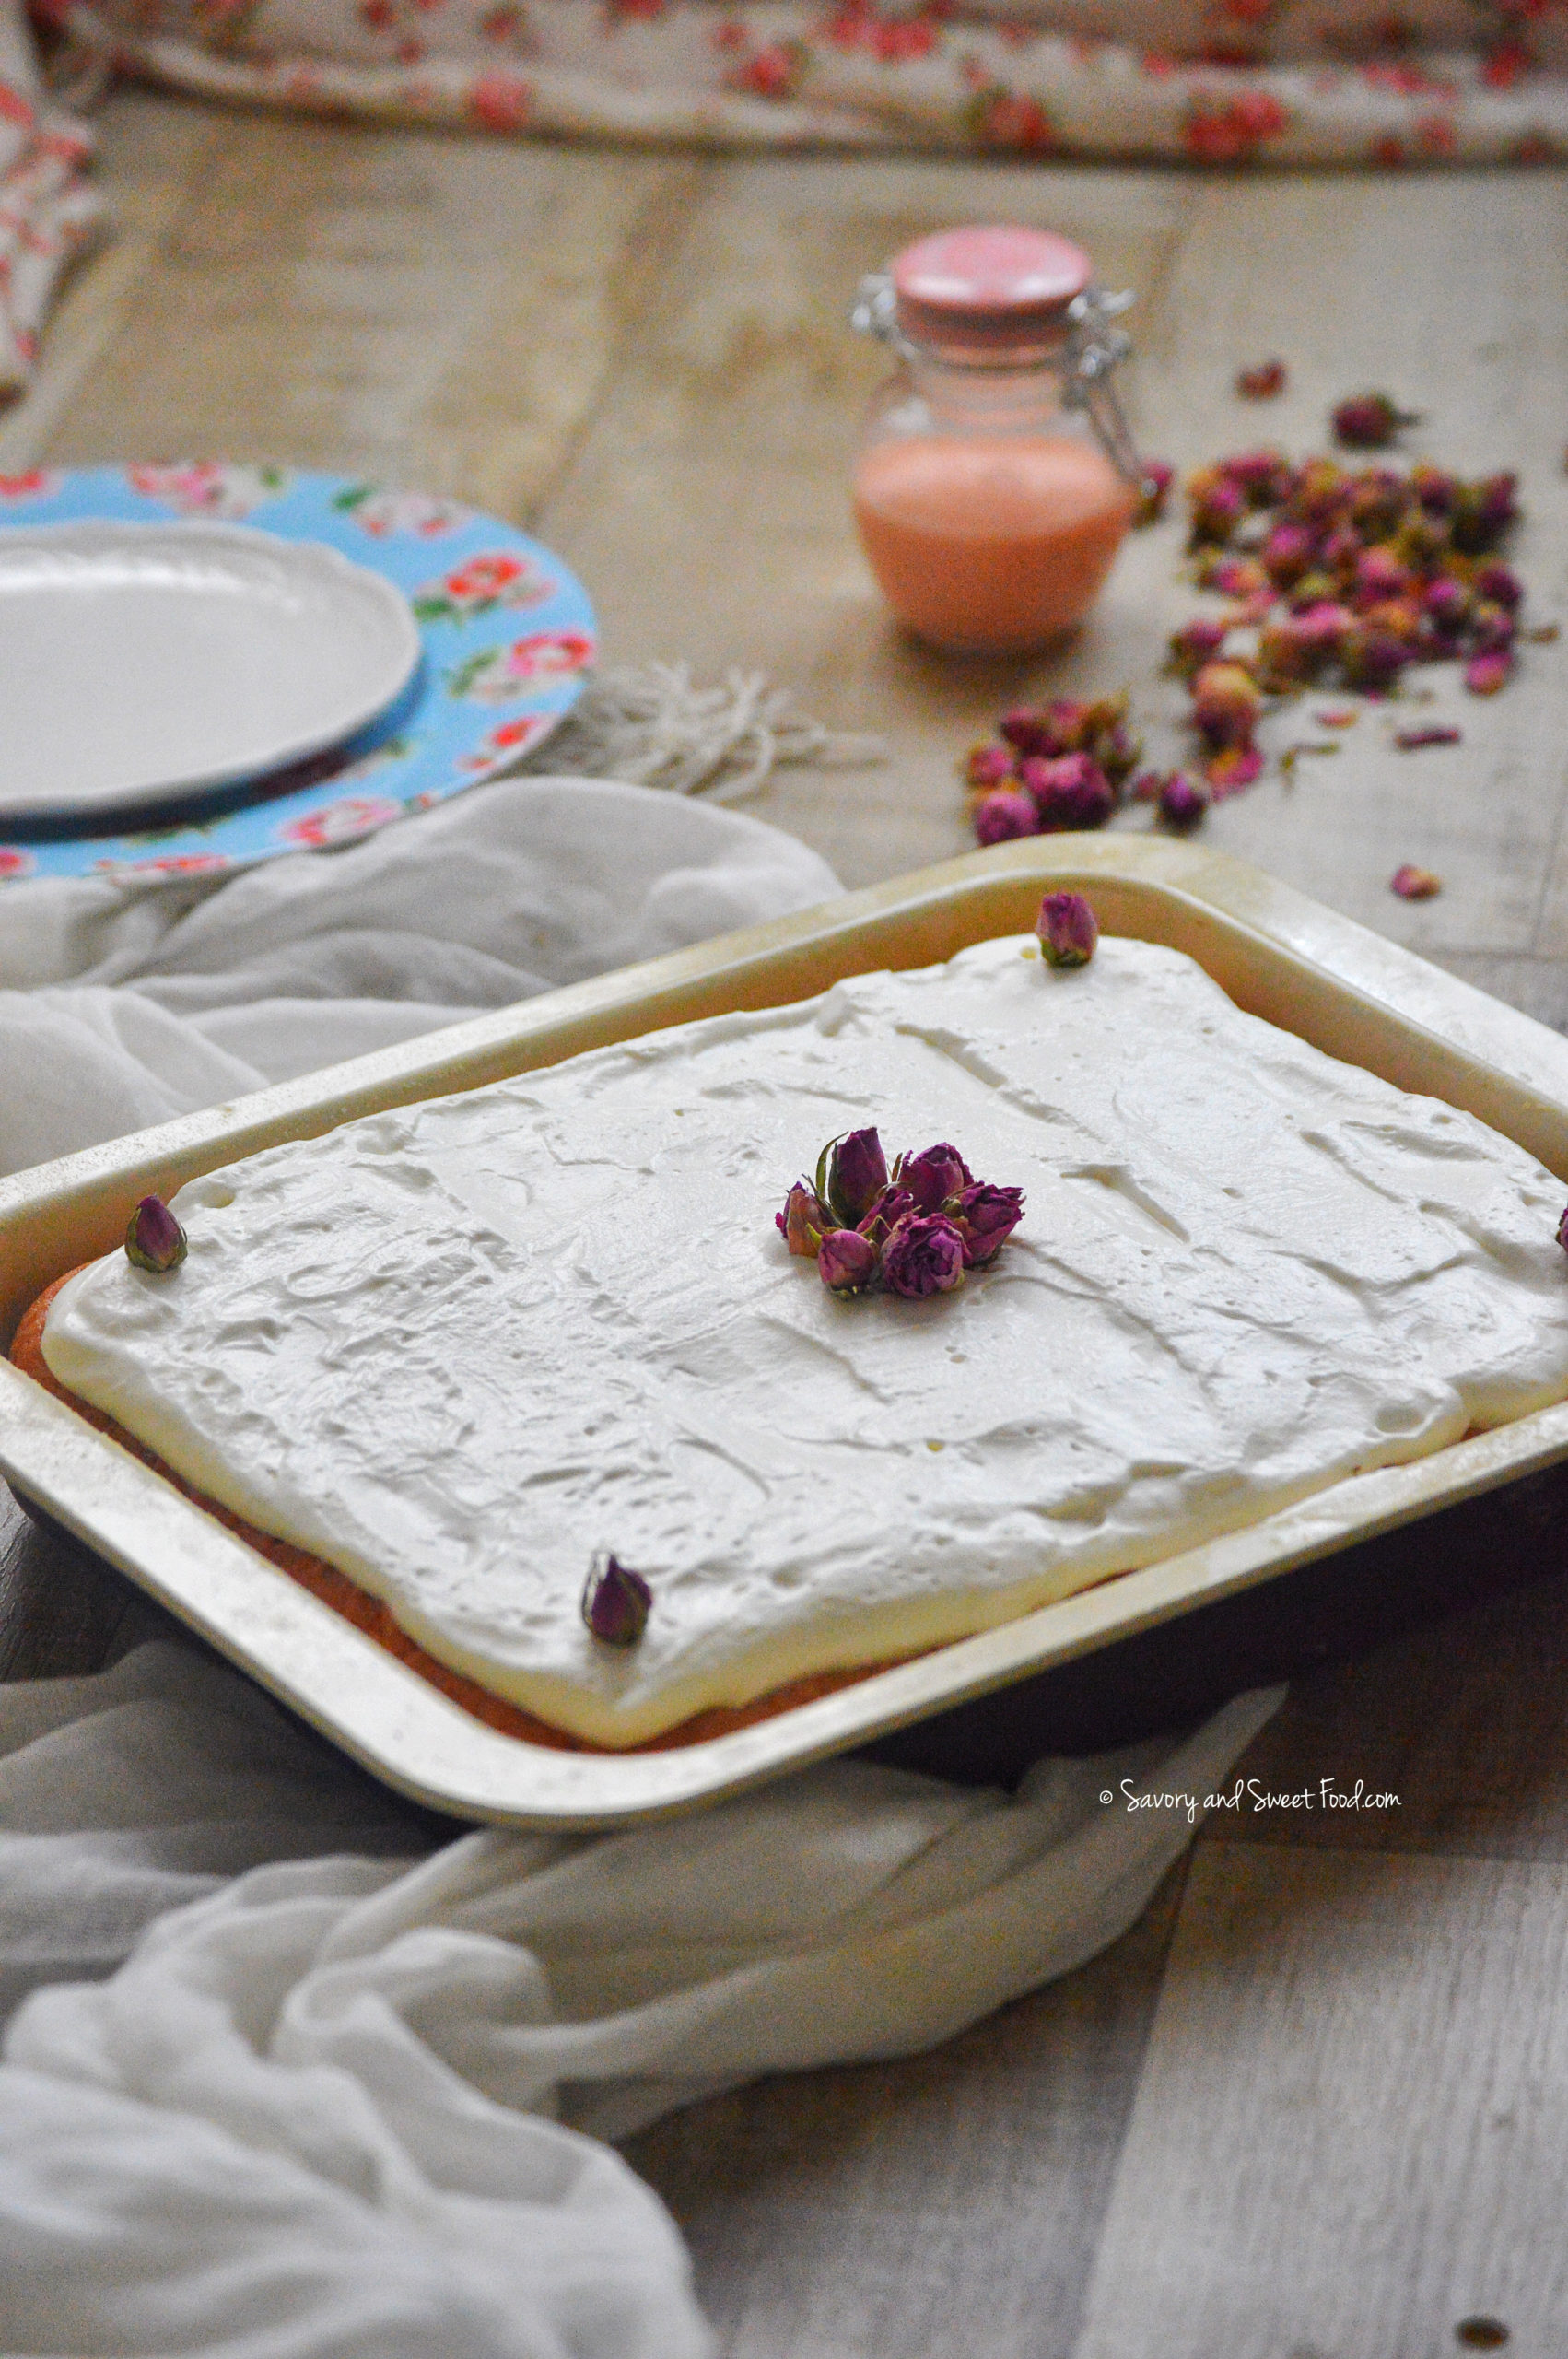 Rose flavored cake recipes